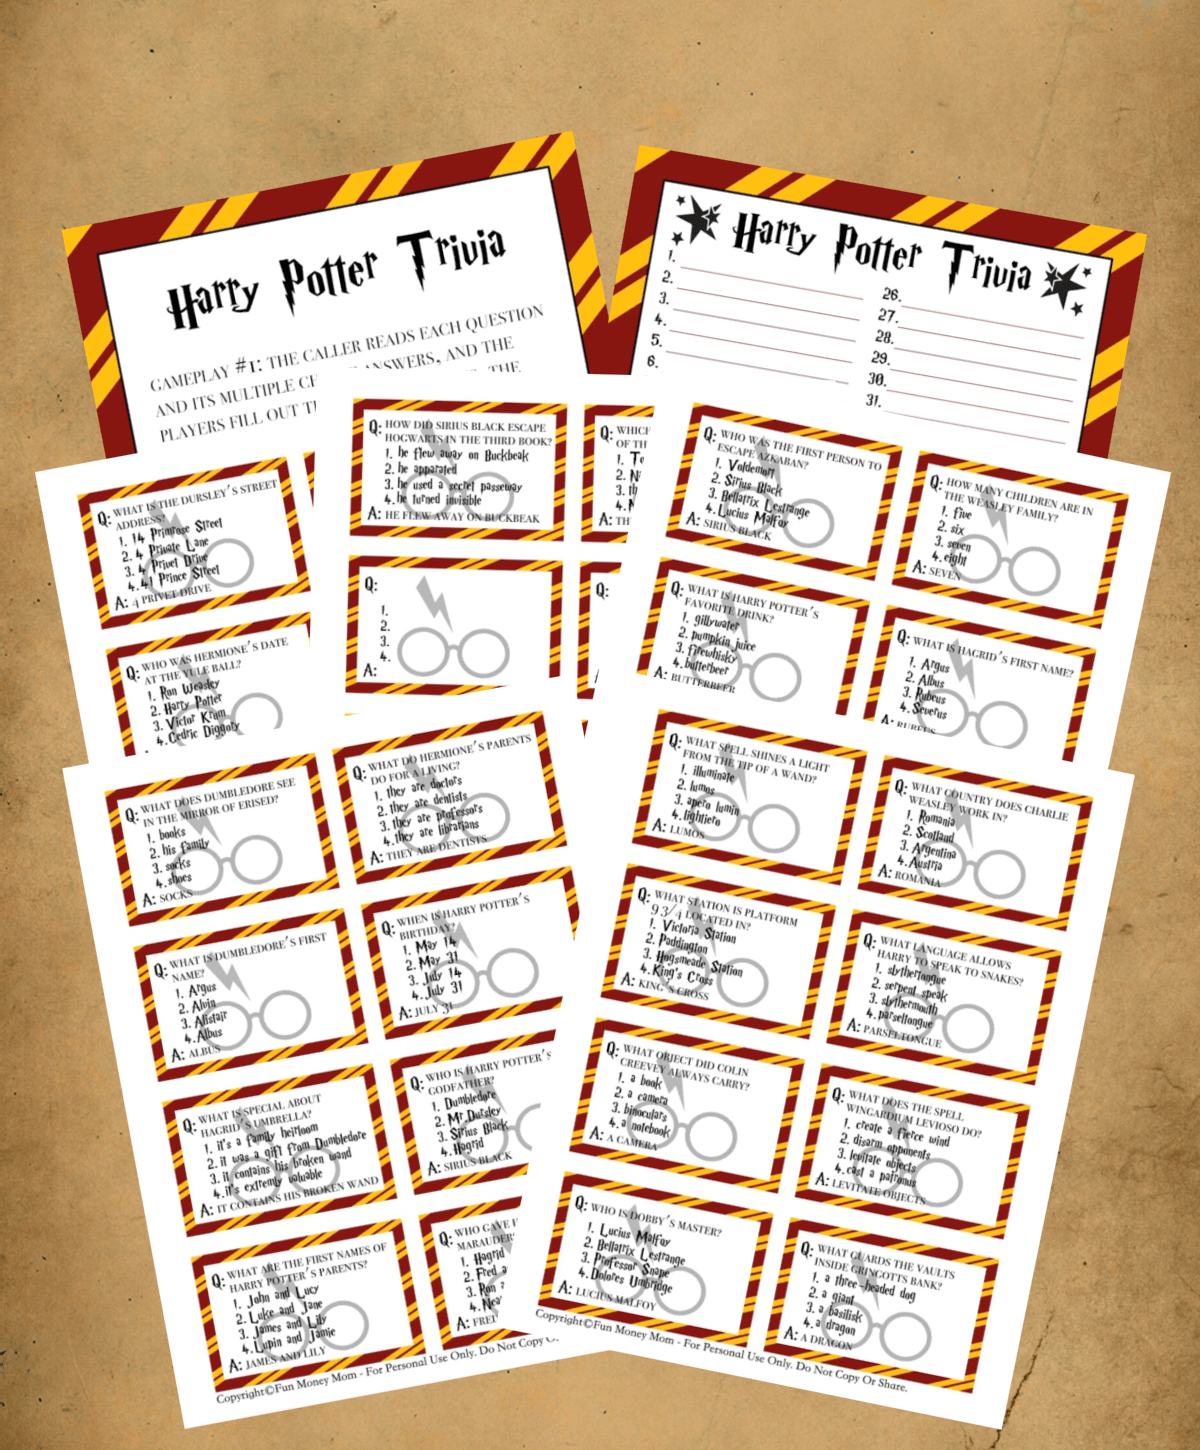 Get A Free Harry Potter Trivia Game!